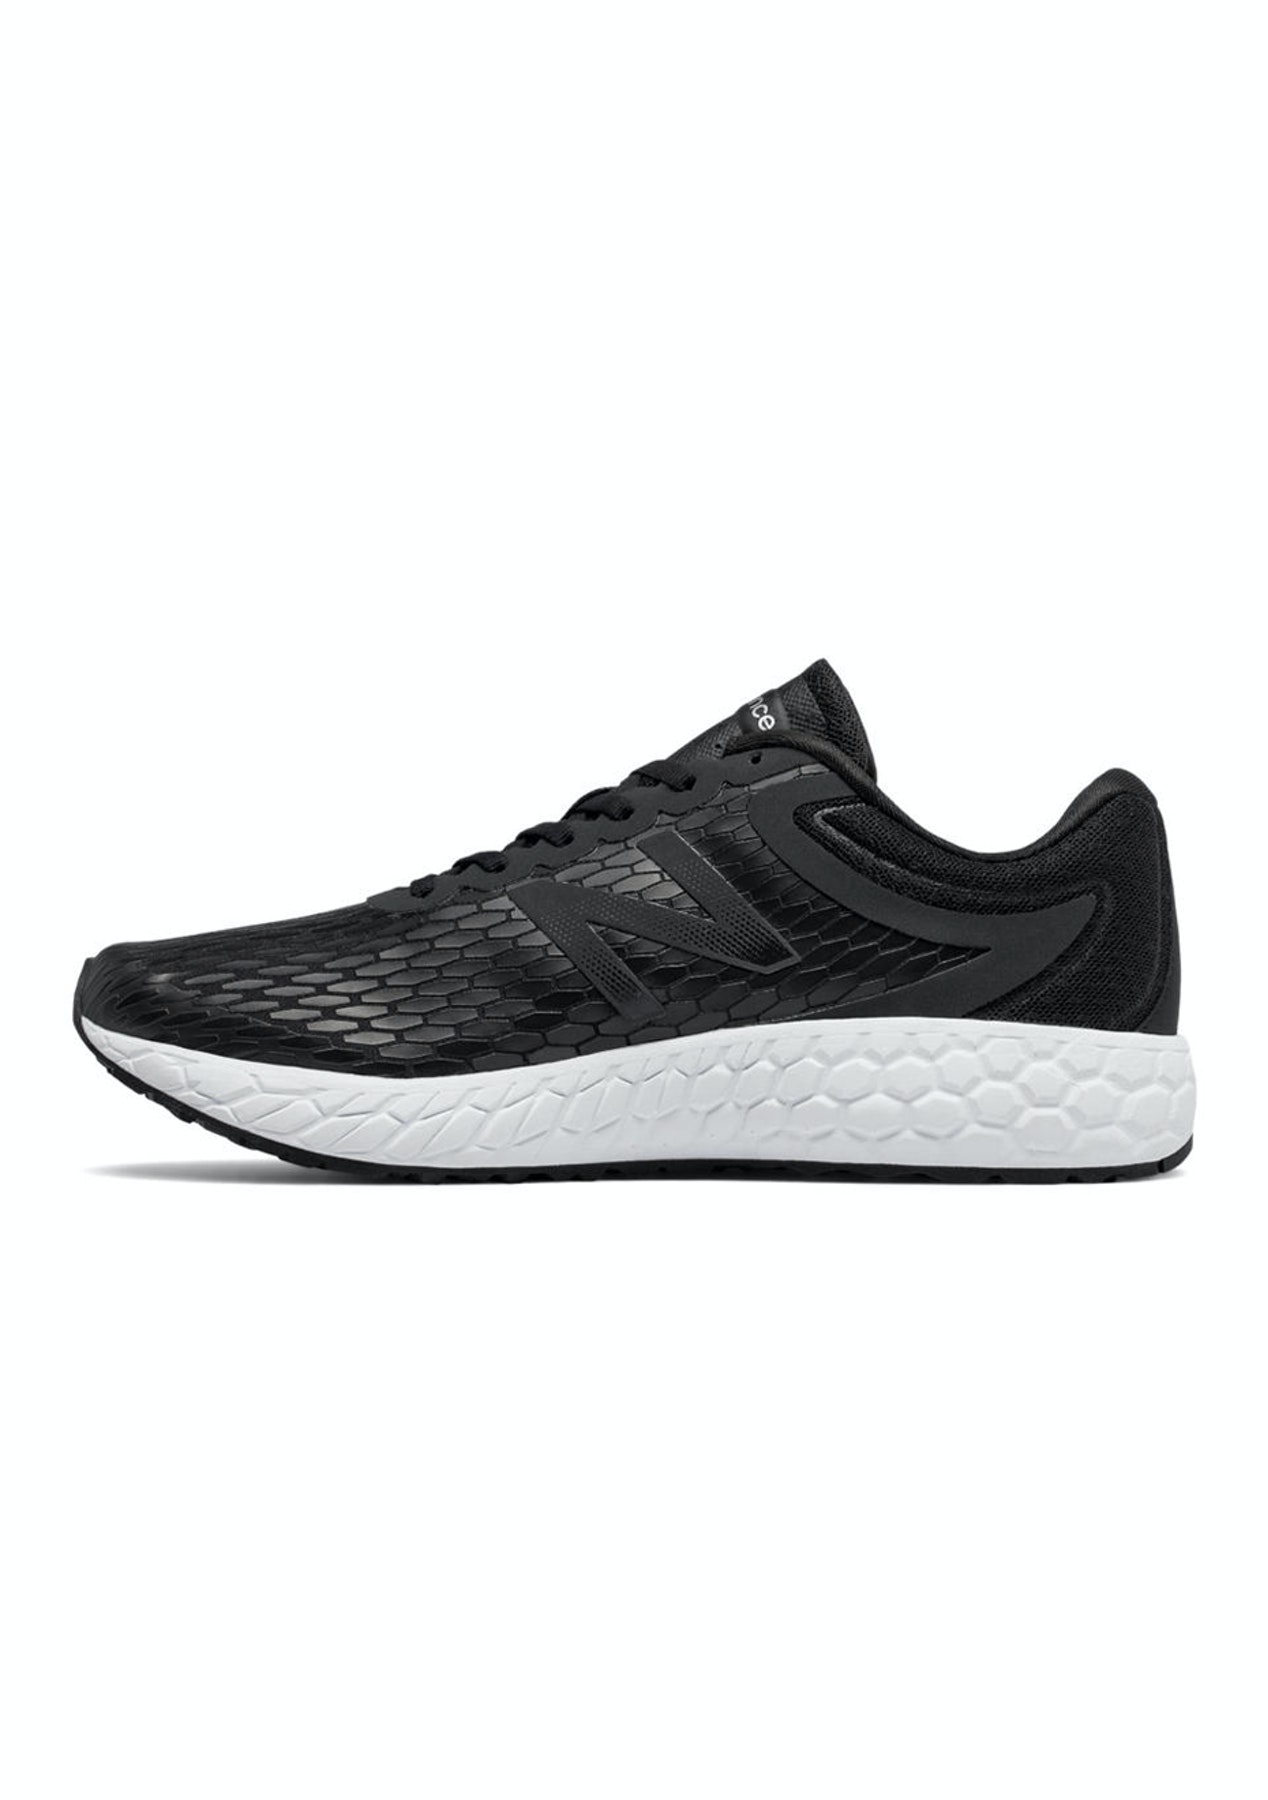 sale retailer 8b8d5 433b3 New Balance Mens - Fresh Foam Boracay v3 - Black with White - New Balance  Reductions - Onceit